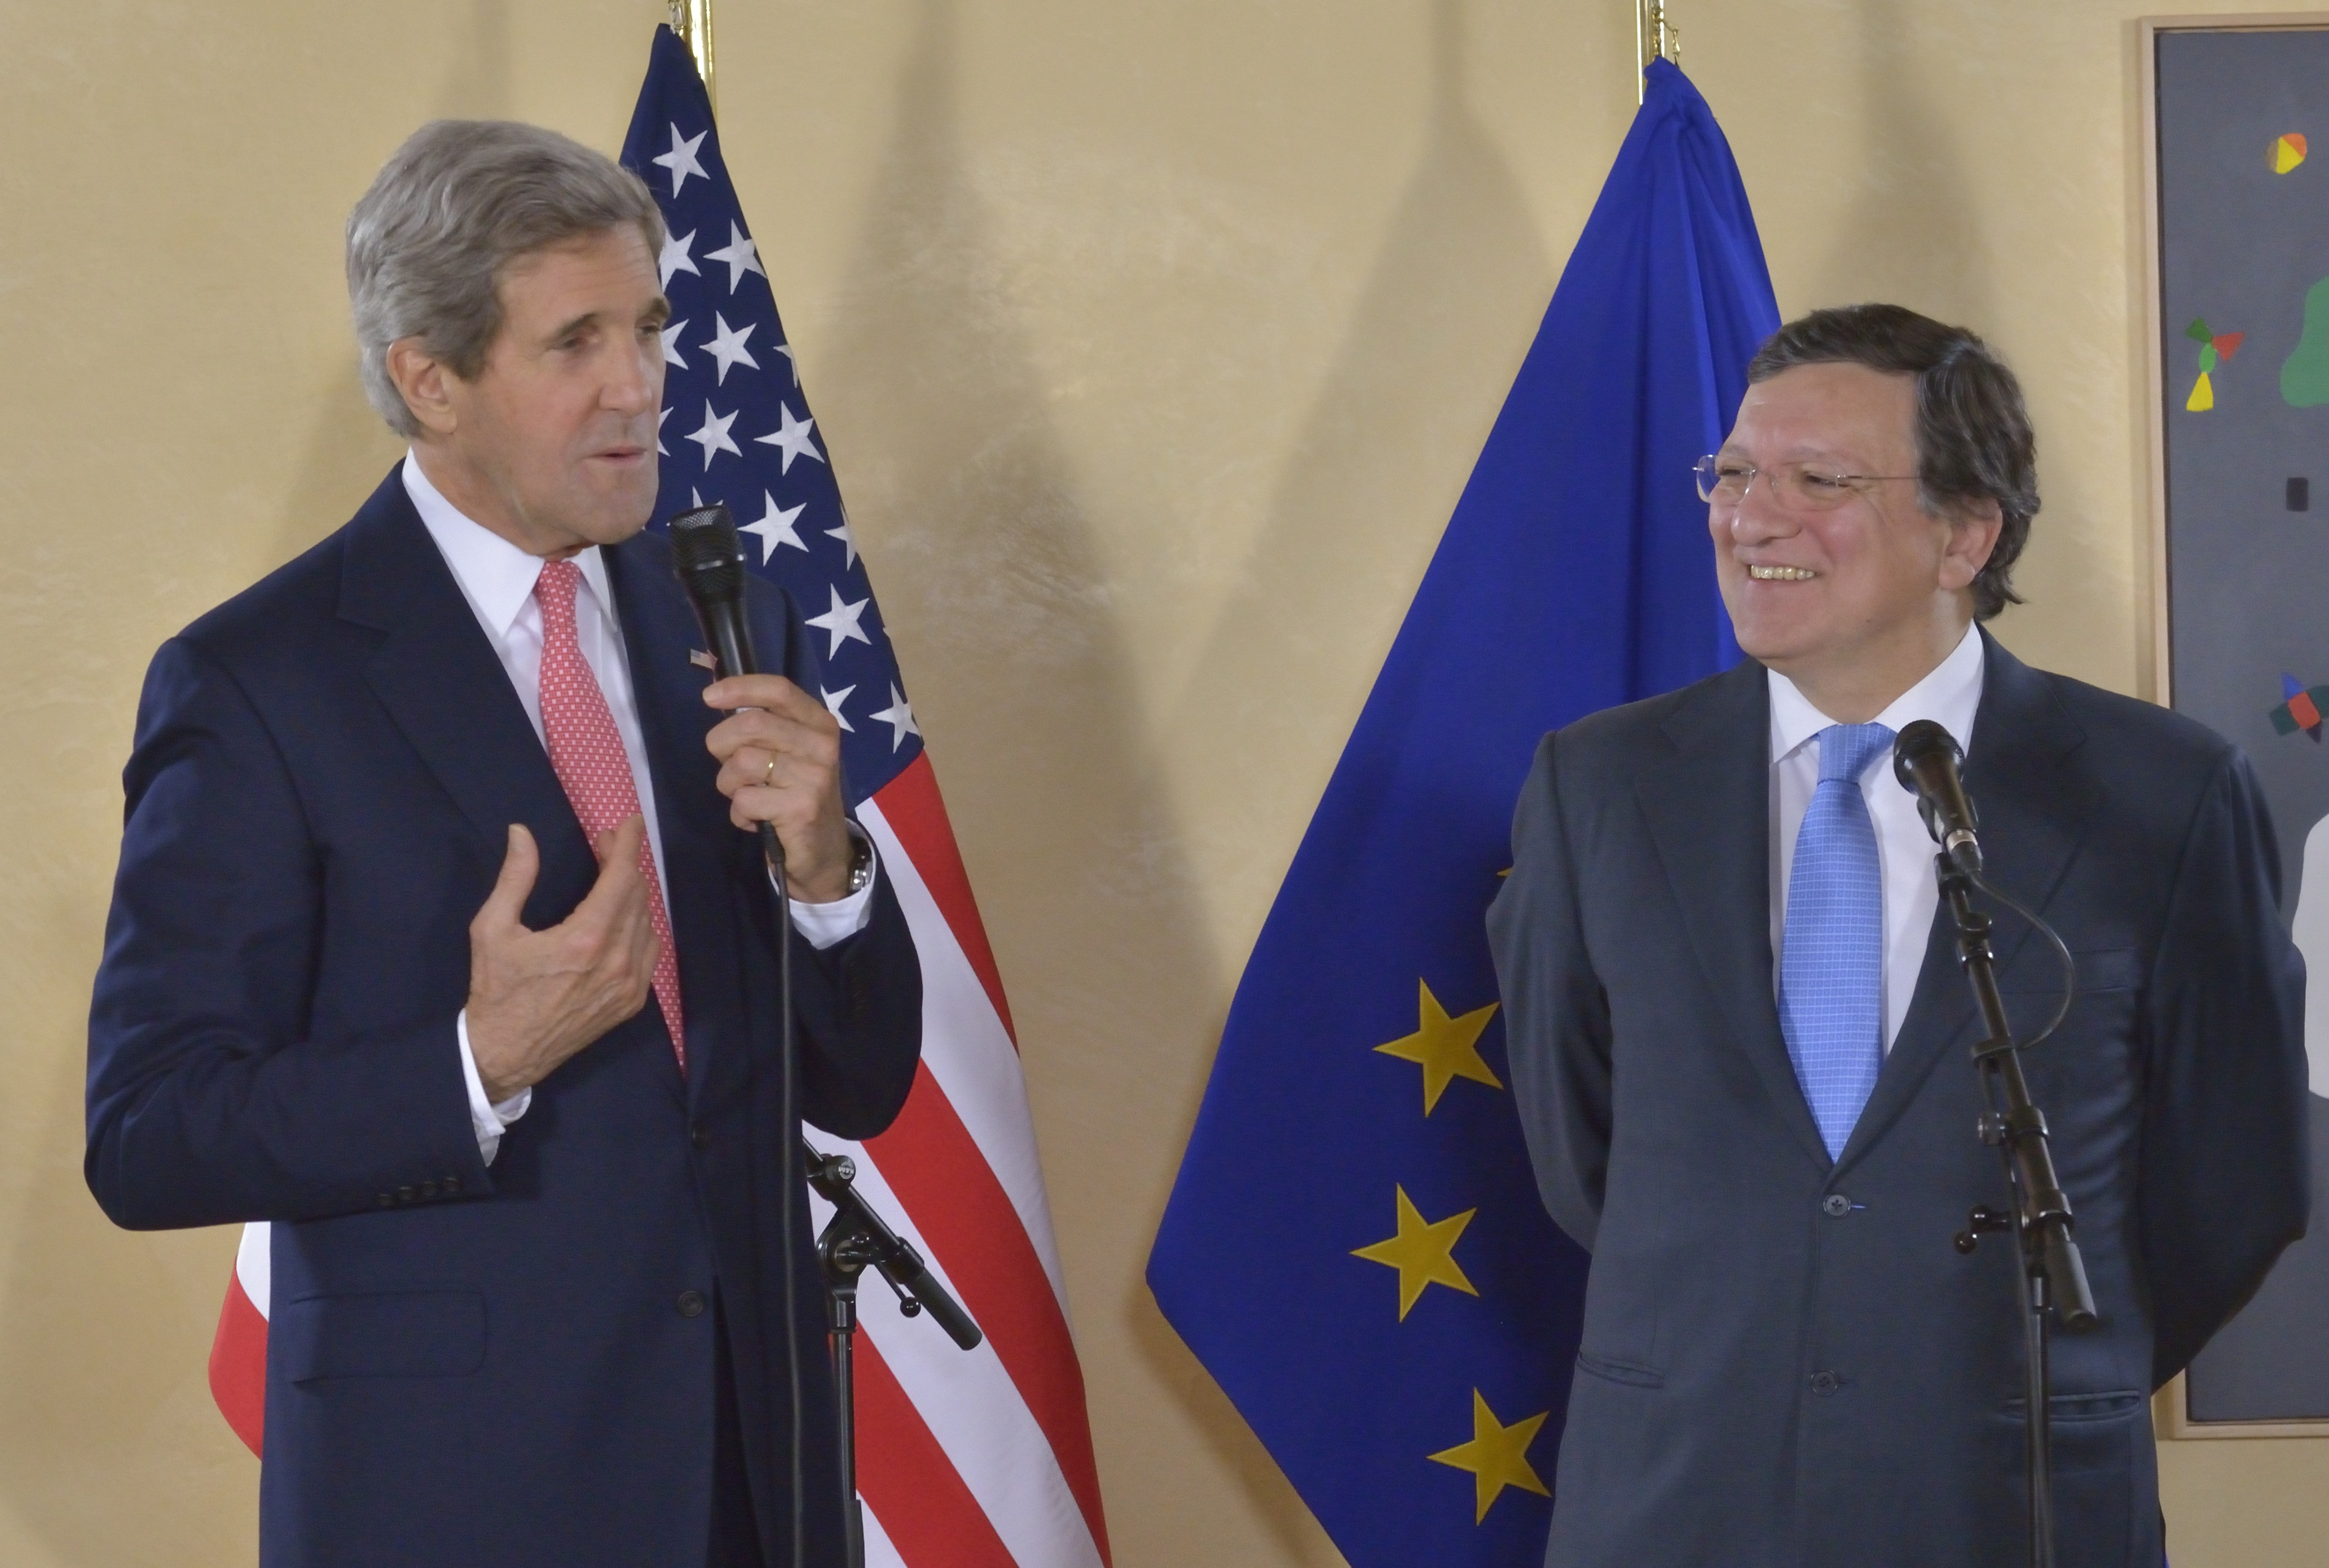 John Kerry, on the left, holding a microphone, and José Manuel Barroso